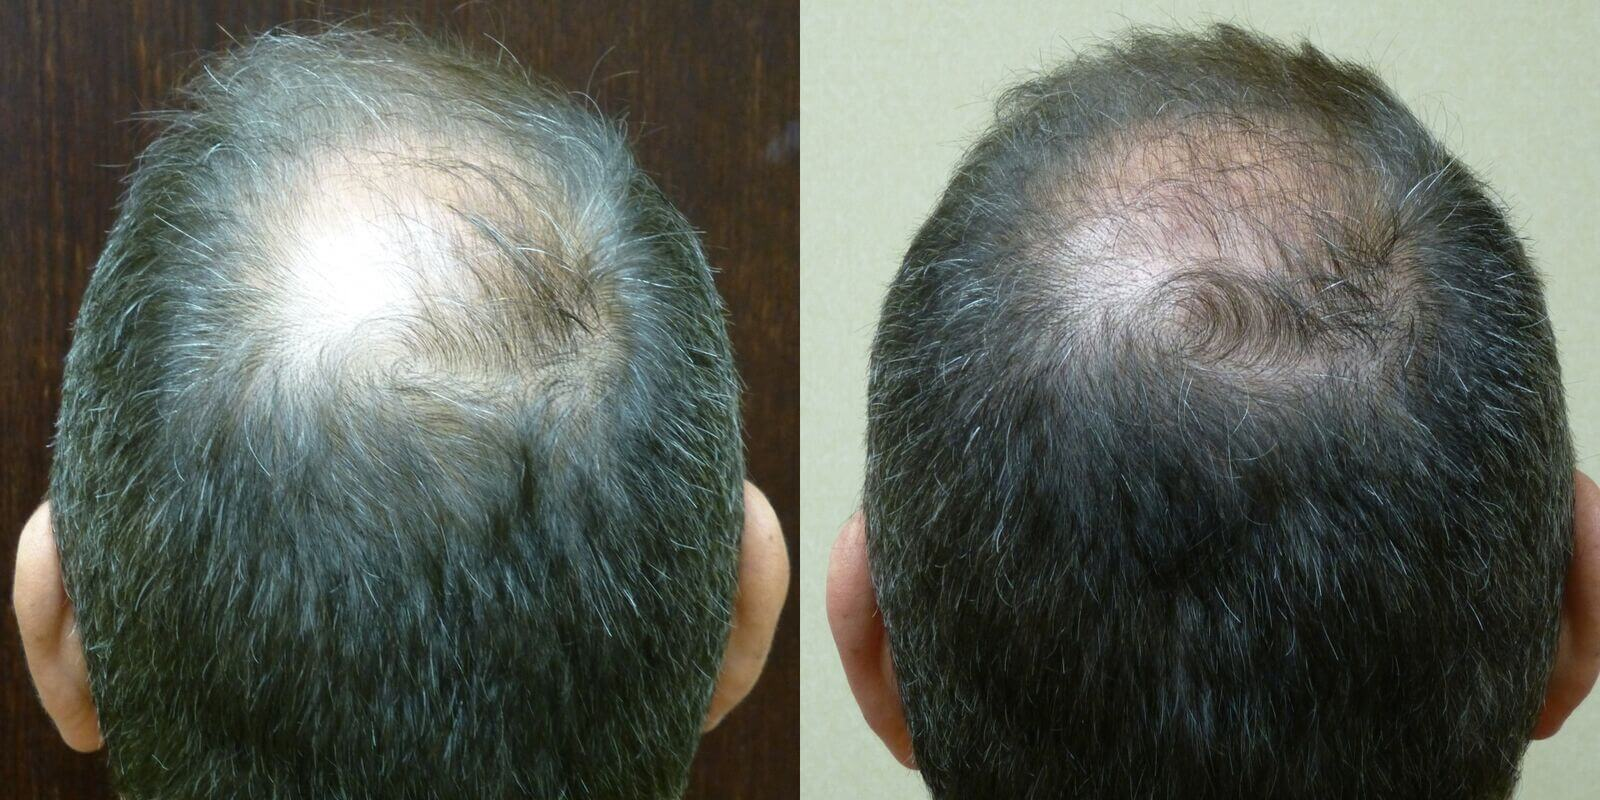 Neograft 43 year old 2,300 grafts to Hairline & crown before and 6 months after